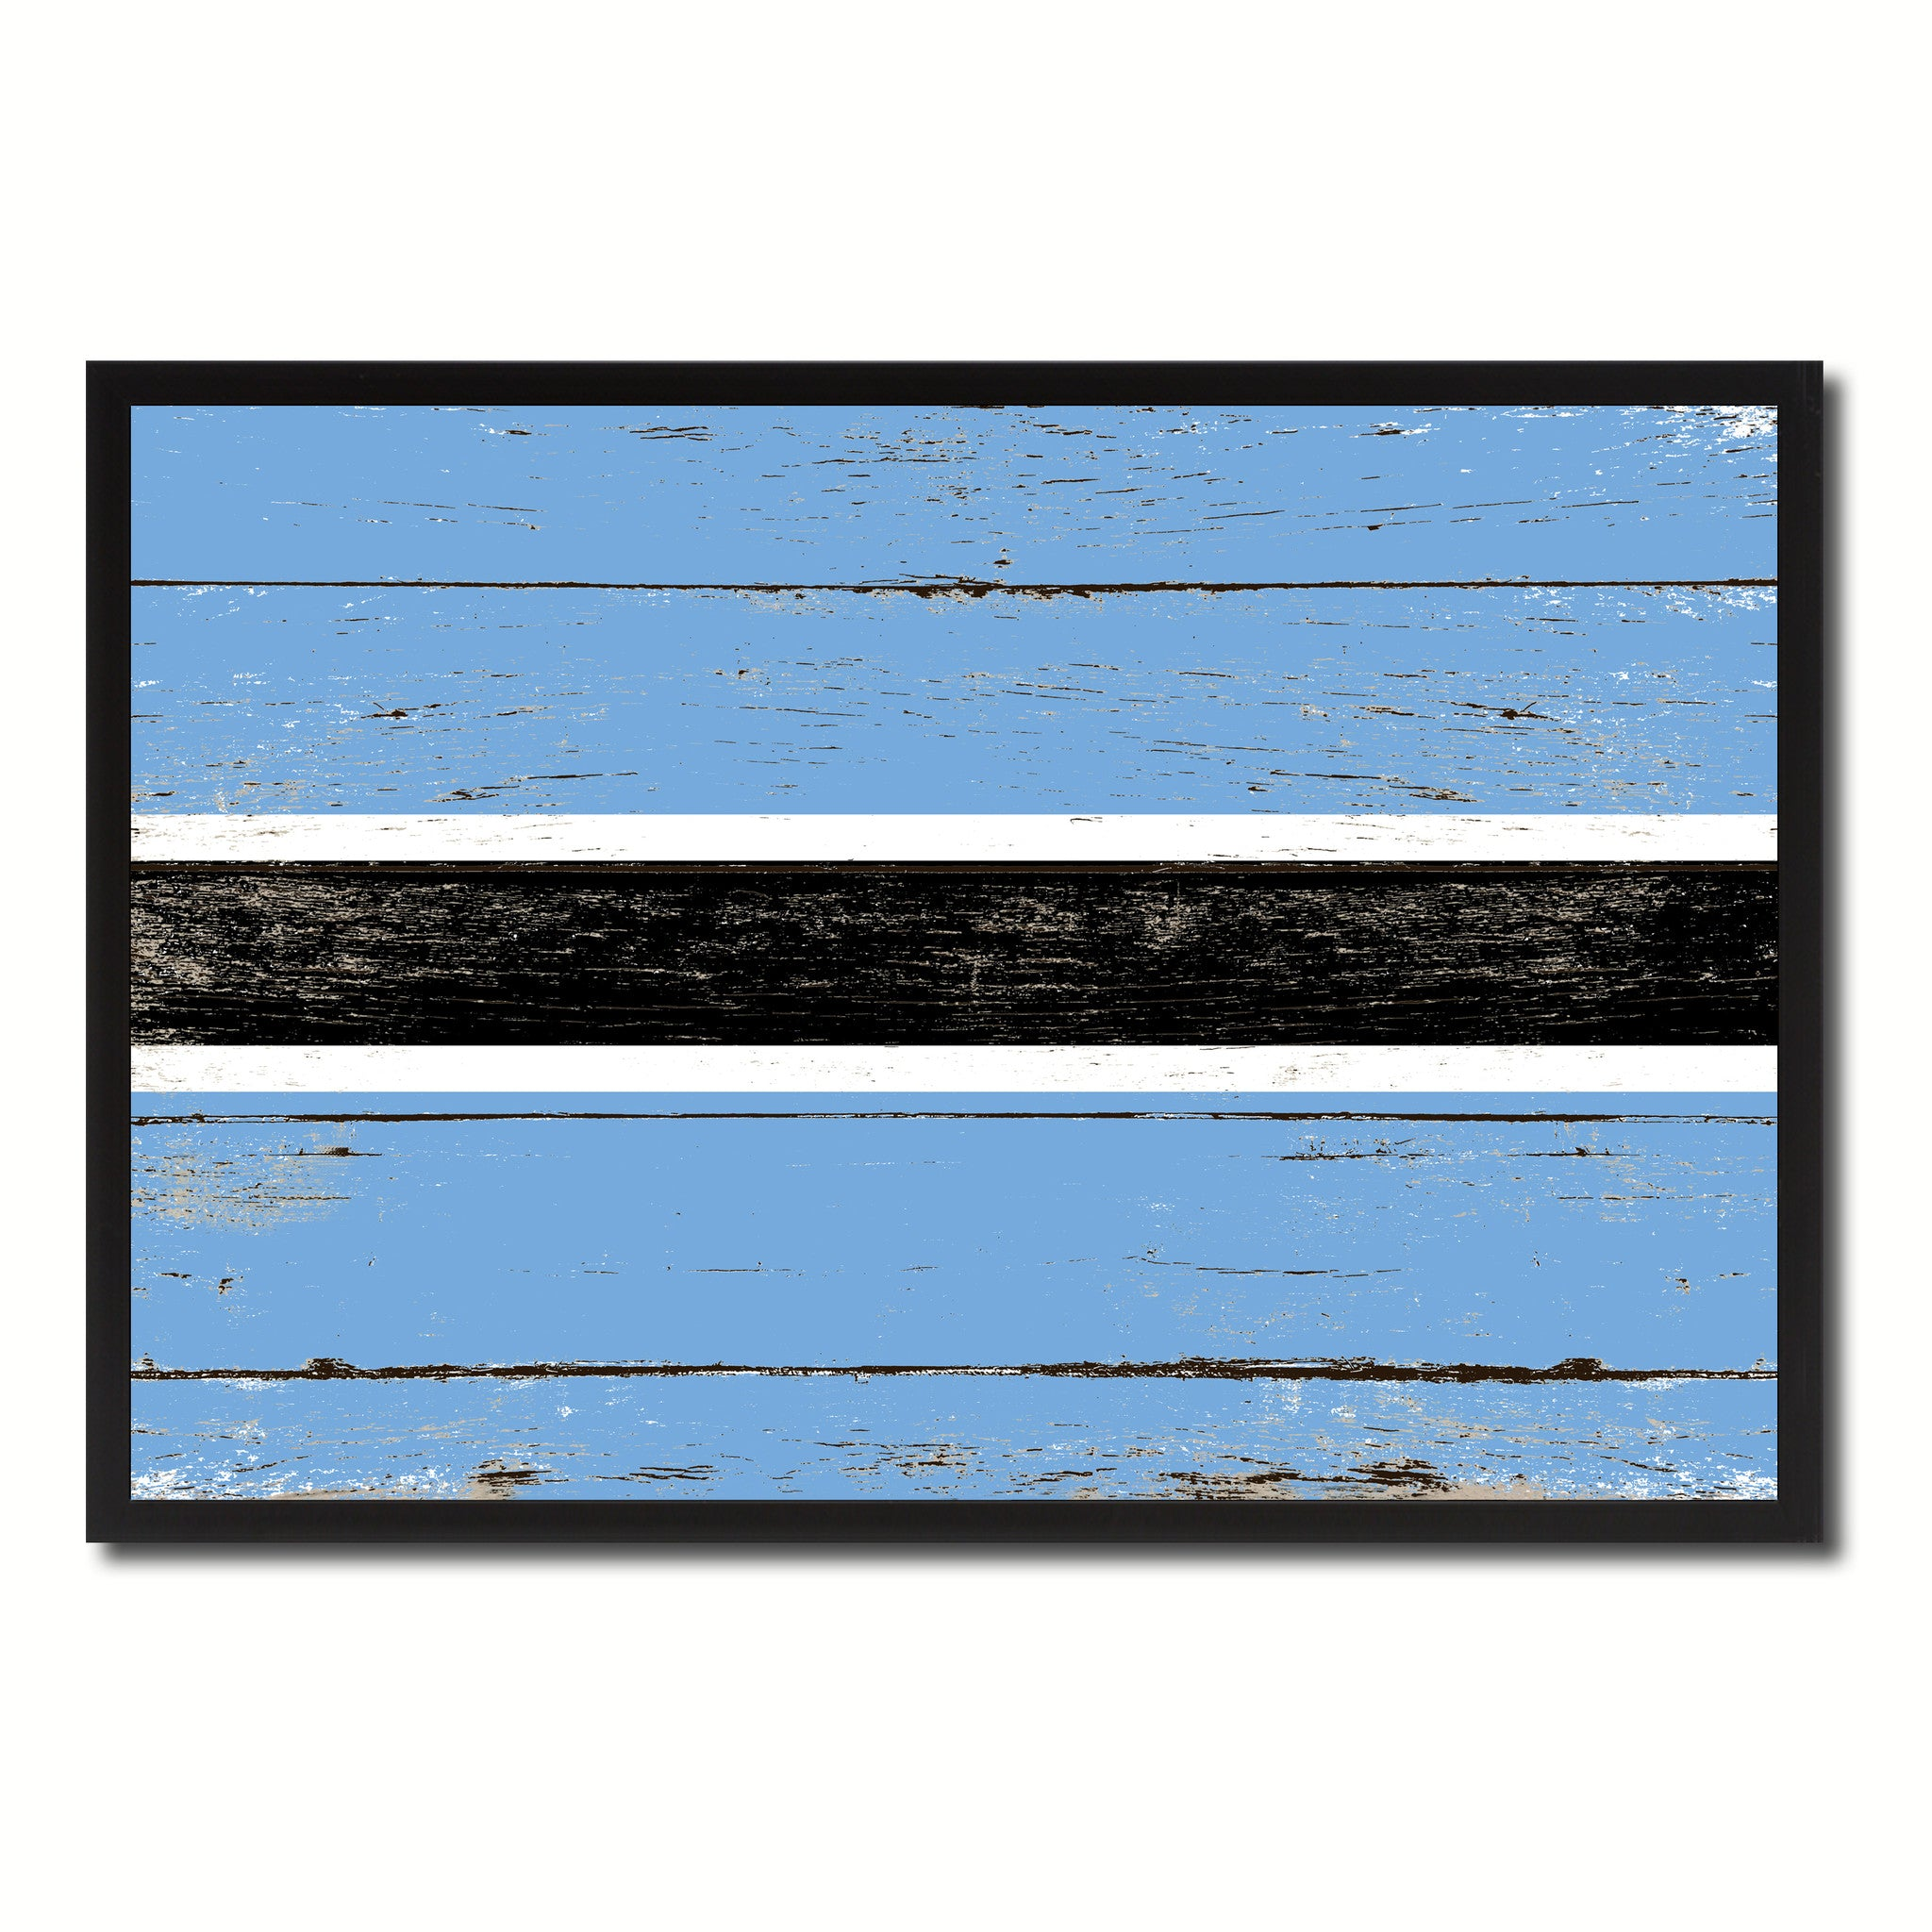 Botswana Country National Flag Vintage Canvas Print with Picture Frame Home Decor Wall Art Collection Gift Ideas